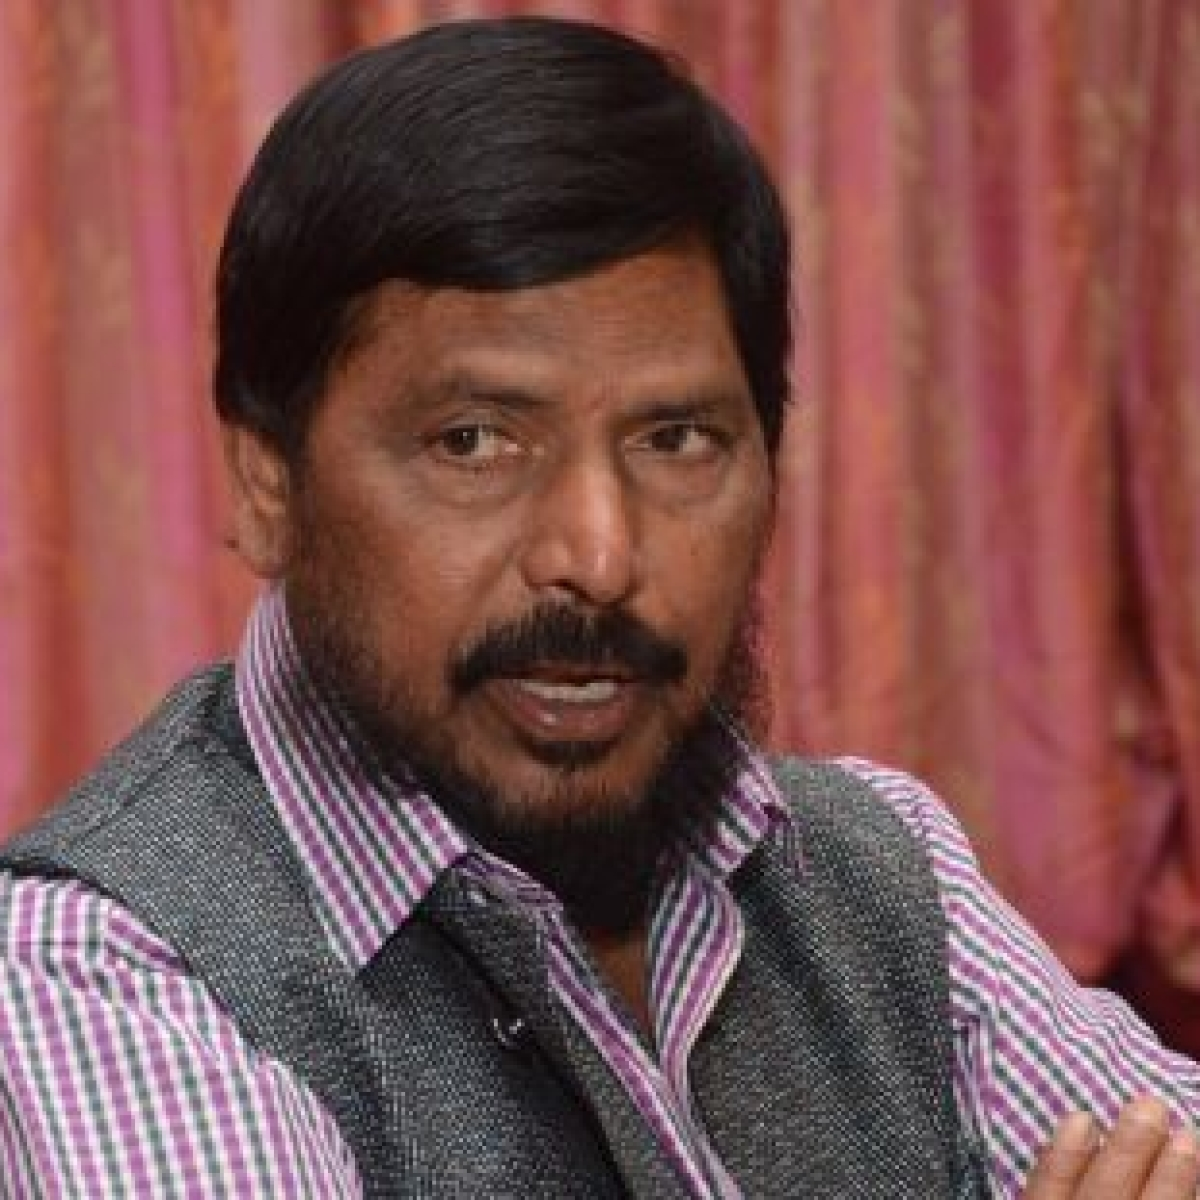 Meme-lord Ramdas Athawale explains rationale behind his 'Go corona, corona go' chant